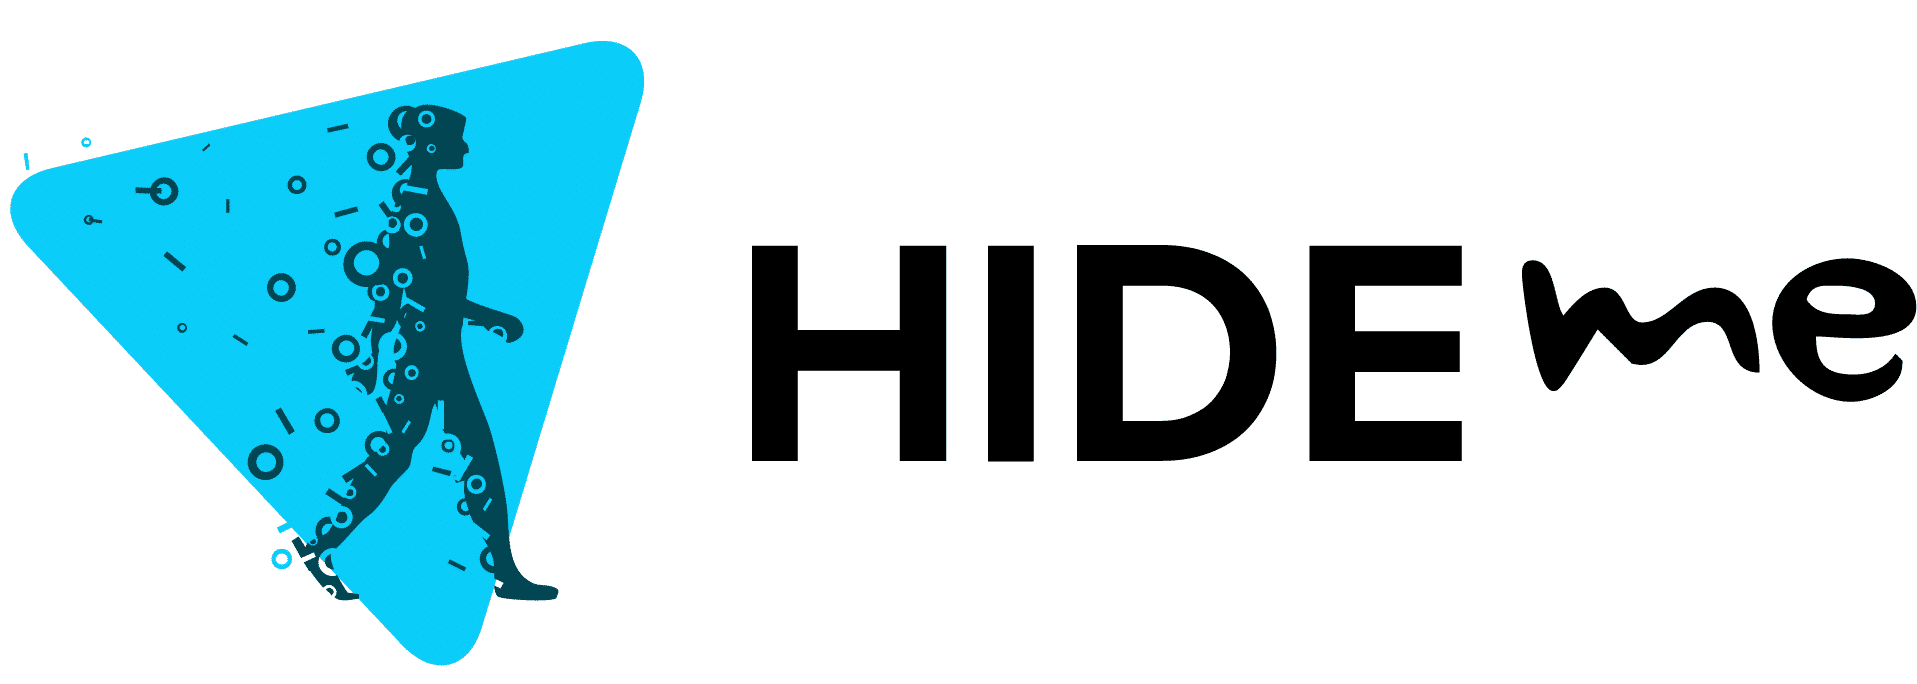 Hide.me - VPN Software : SaaSworthy.com